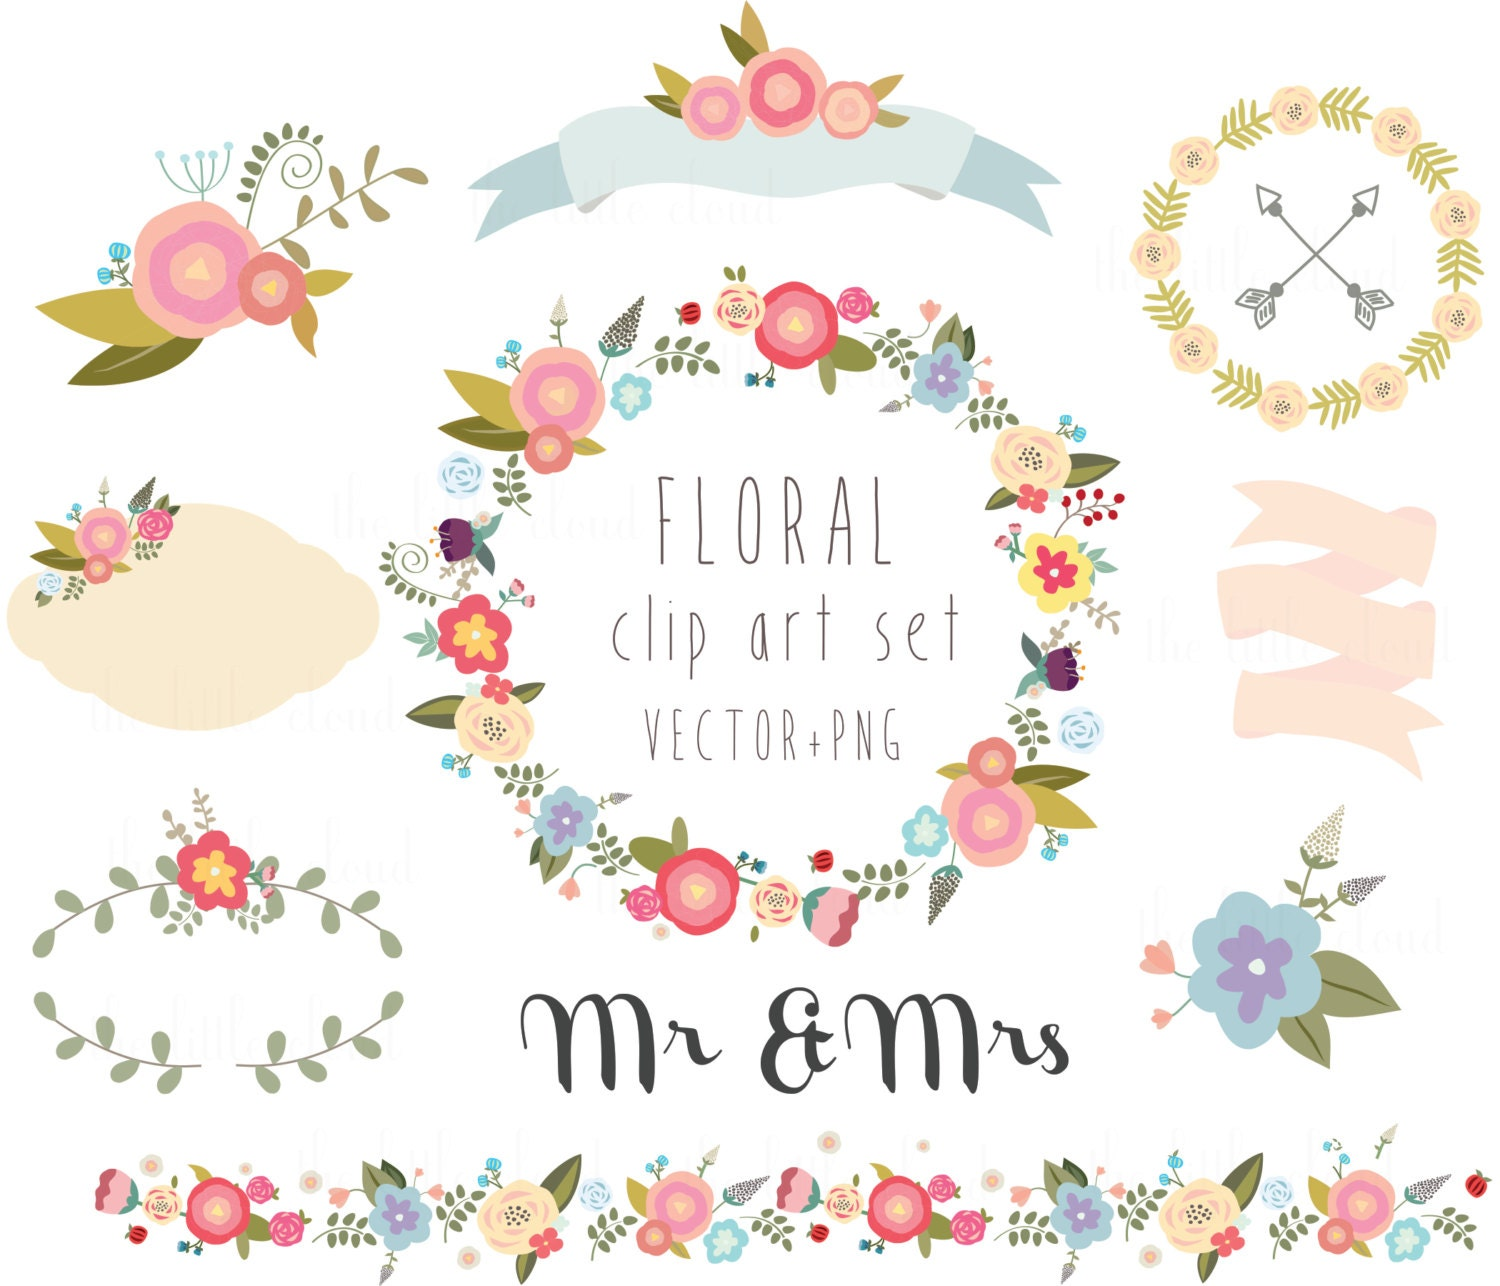 Wedding And Certificate Floral Border Border Clipart: Floral Clipart Wedding Clipartvector PNG Digital Wreath